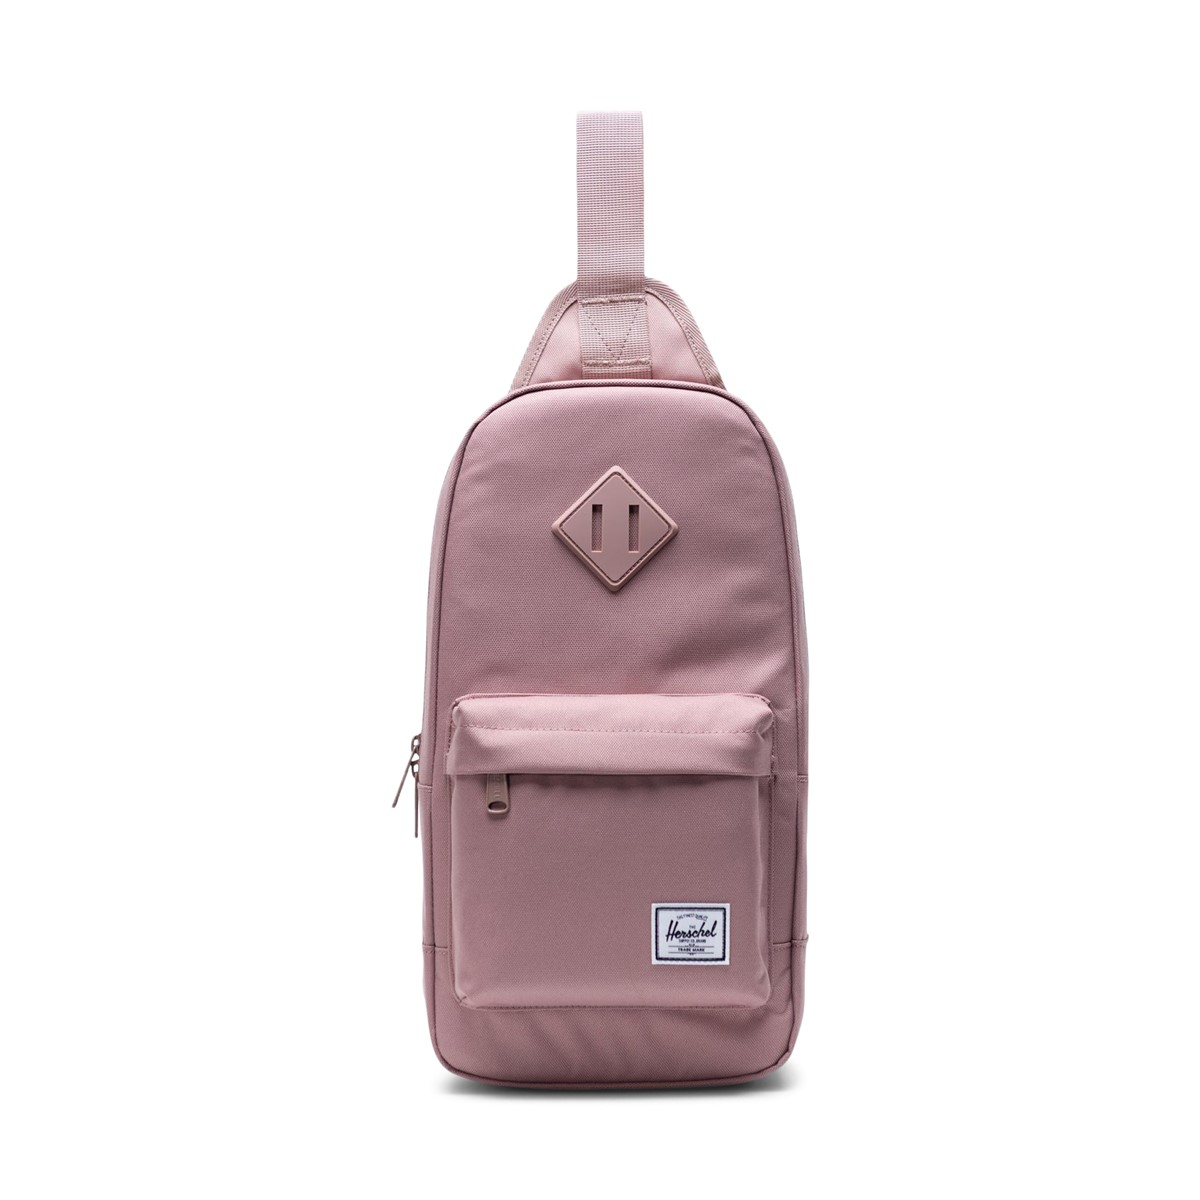 Heritage Crossbody Bag in Pink